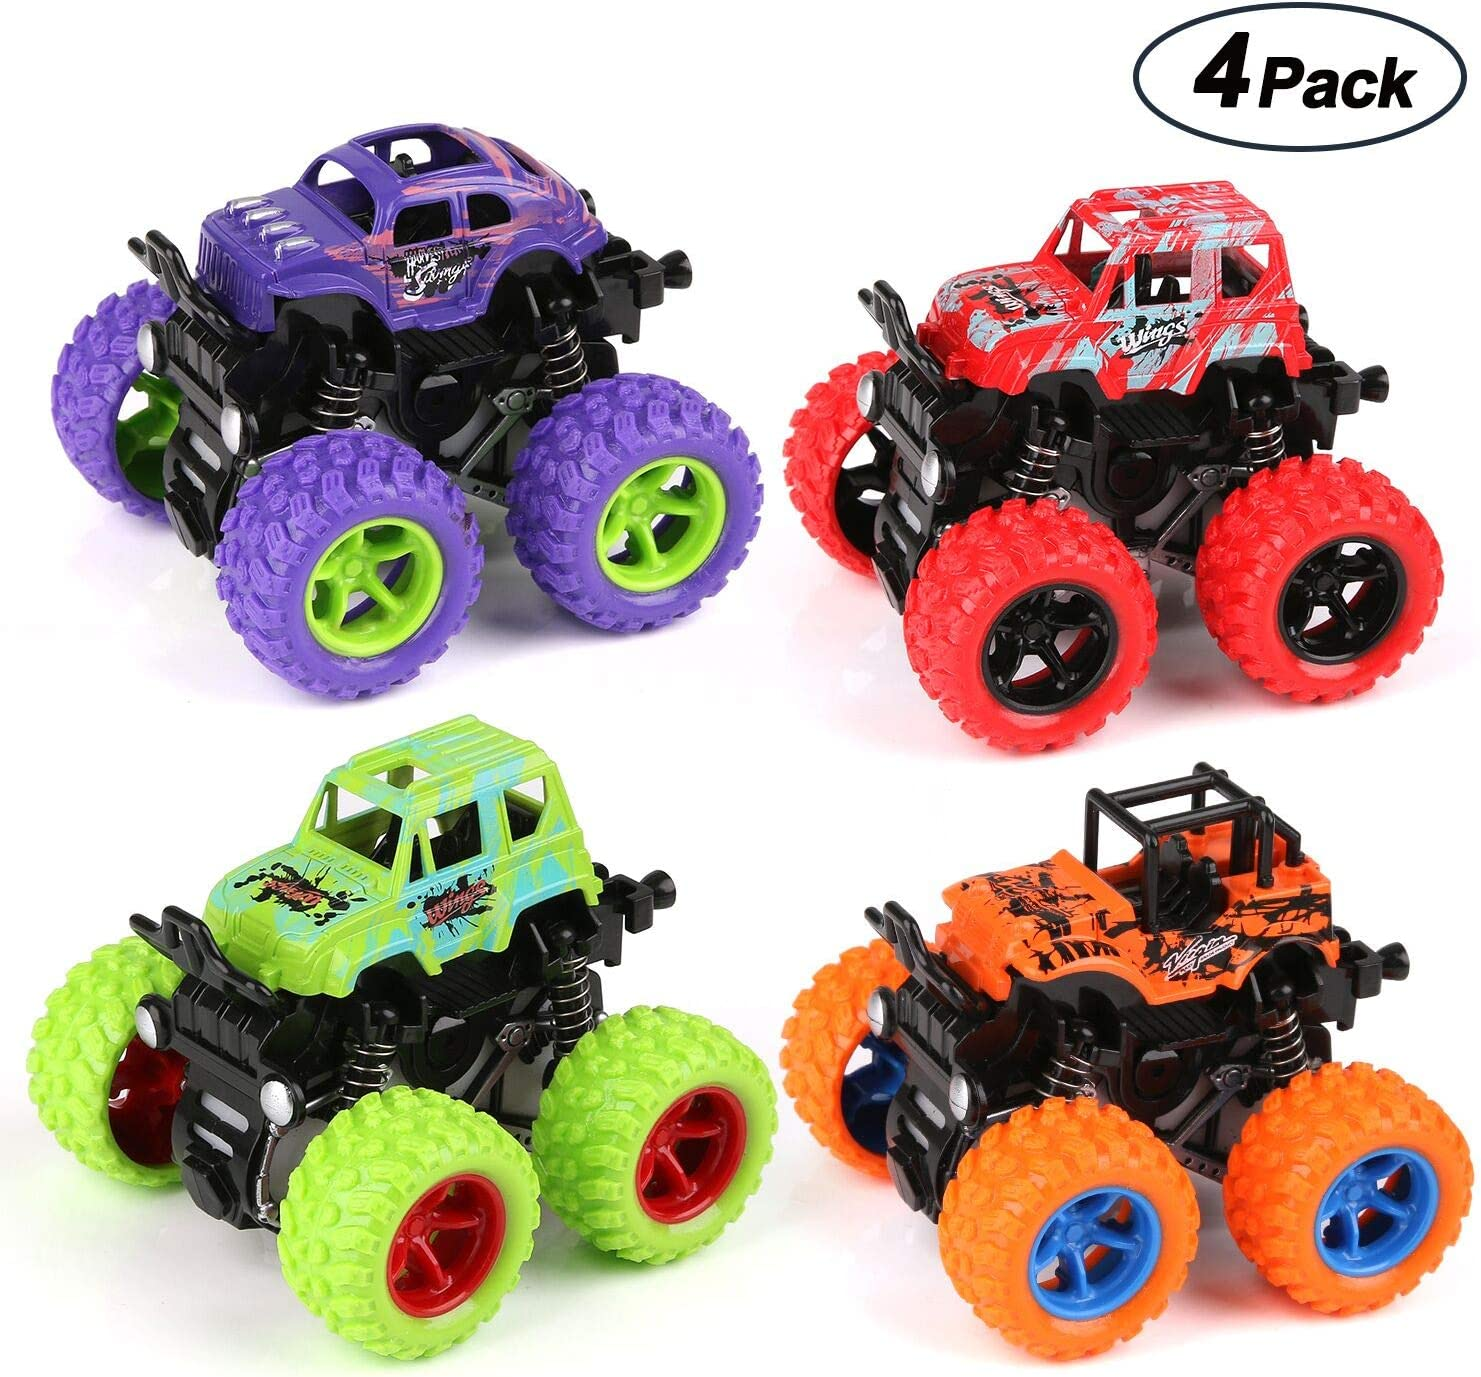 Amazon Com Bblike 4 Pack Monster Truck Cars Push And Go Toys With Durable Rubber Tires Friction Powered Cars 4 Wheel Drive Vehicles For Toddlers Kids Boys Girls Age 3 Toys Games